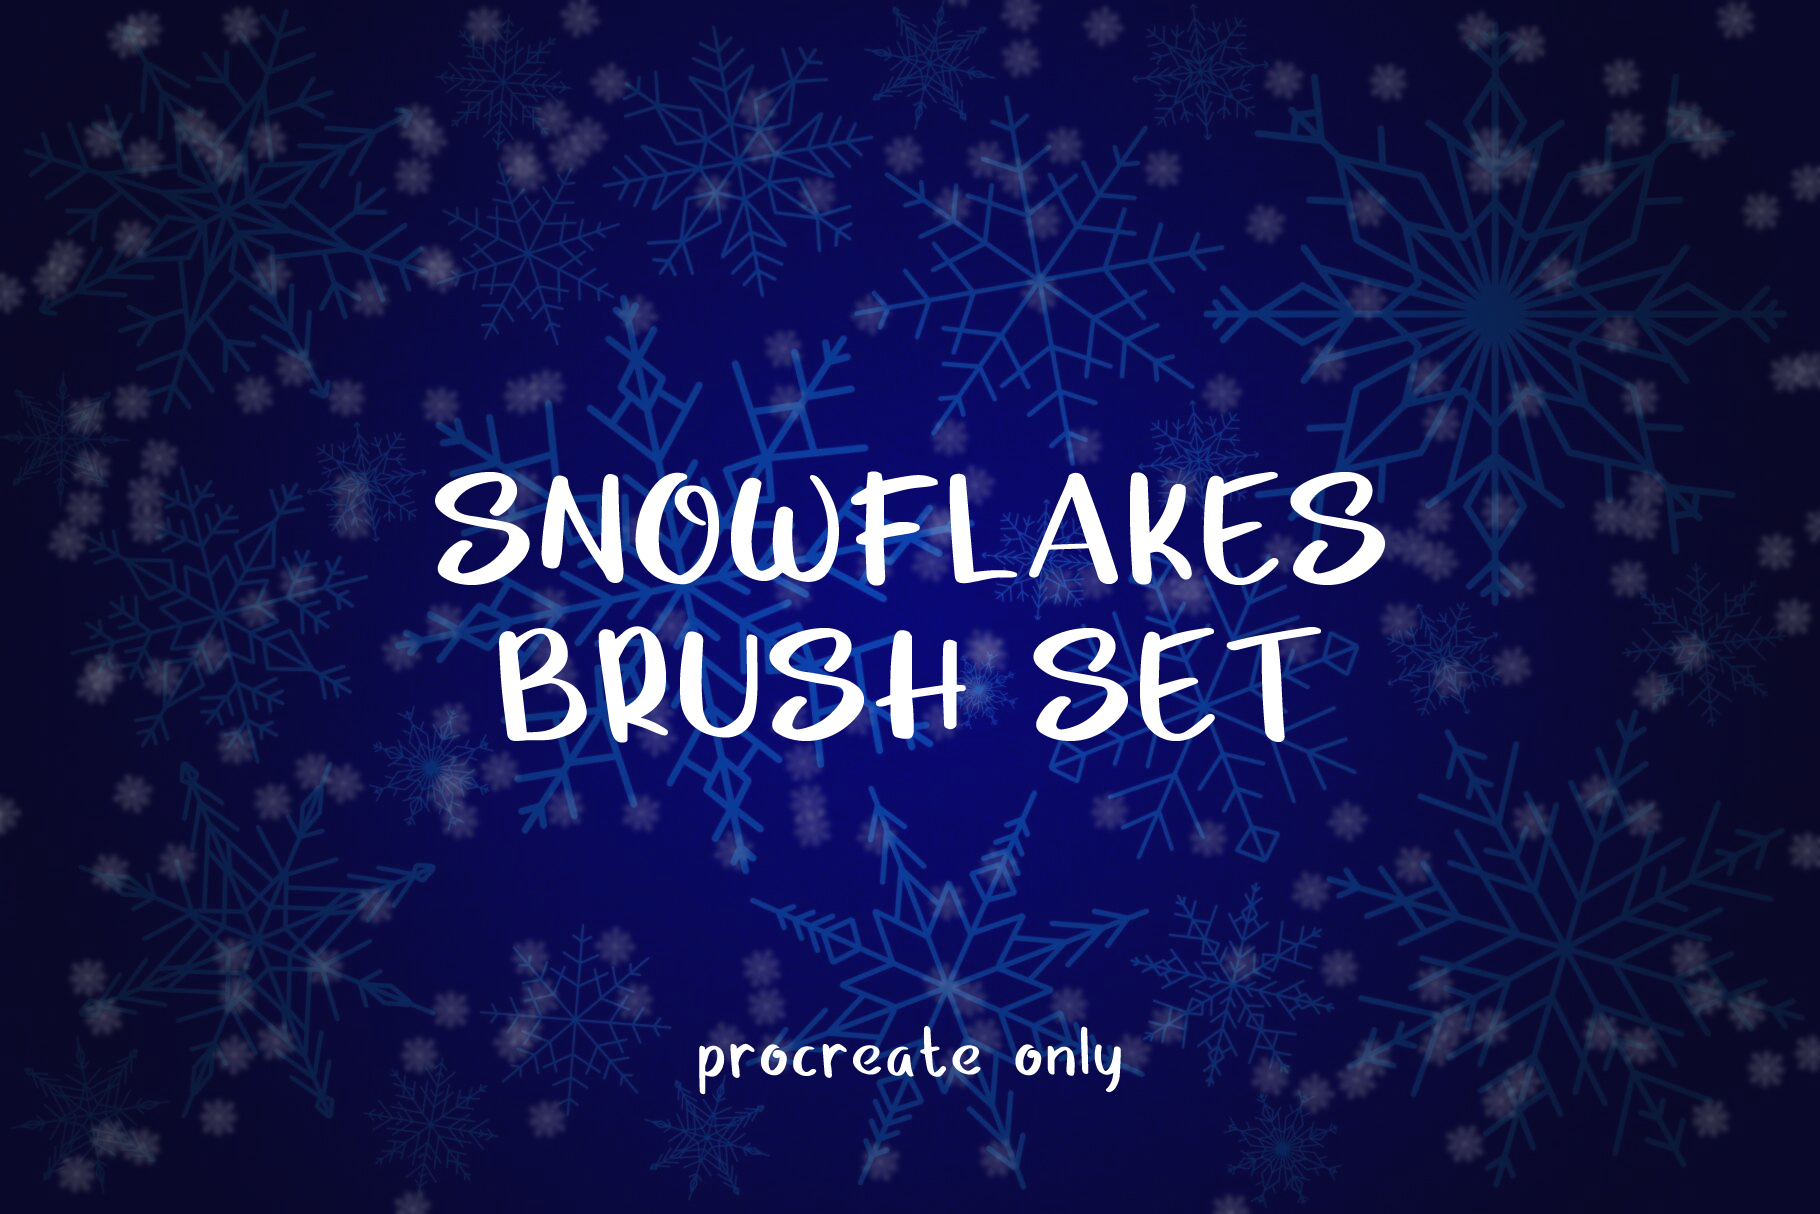 Download Free Snowflakes Brush Set For Procreate Graphic By Musan Creative for Cricut Explore, Silhouette and other cutting machines.